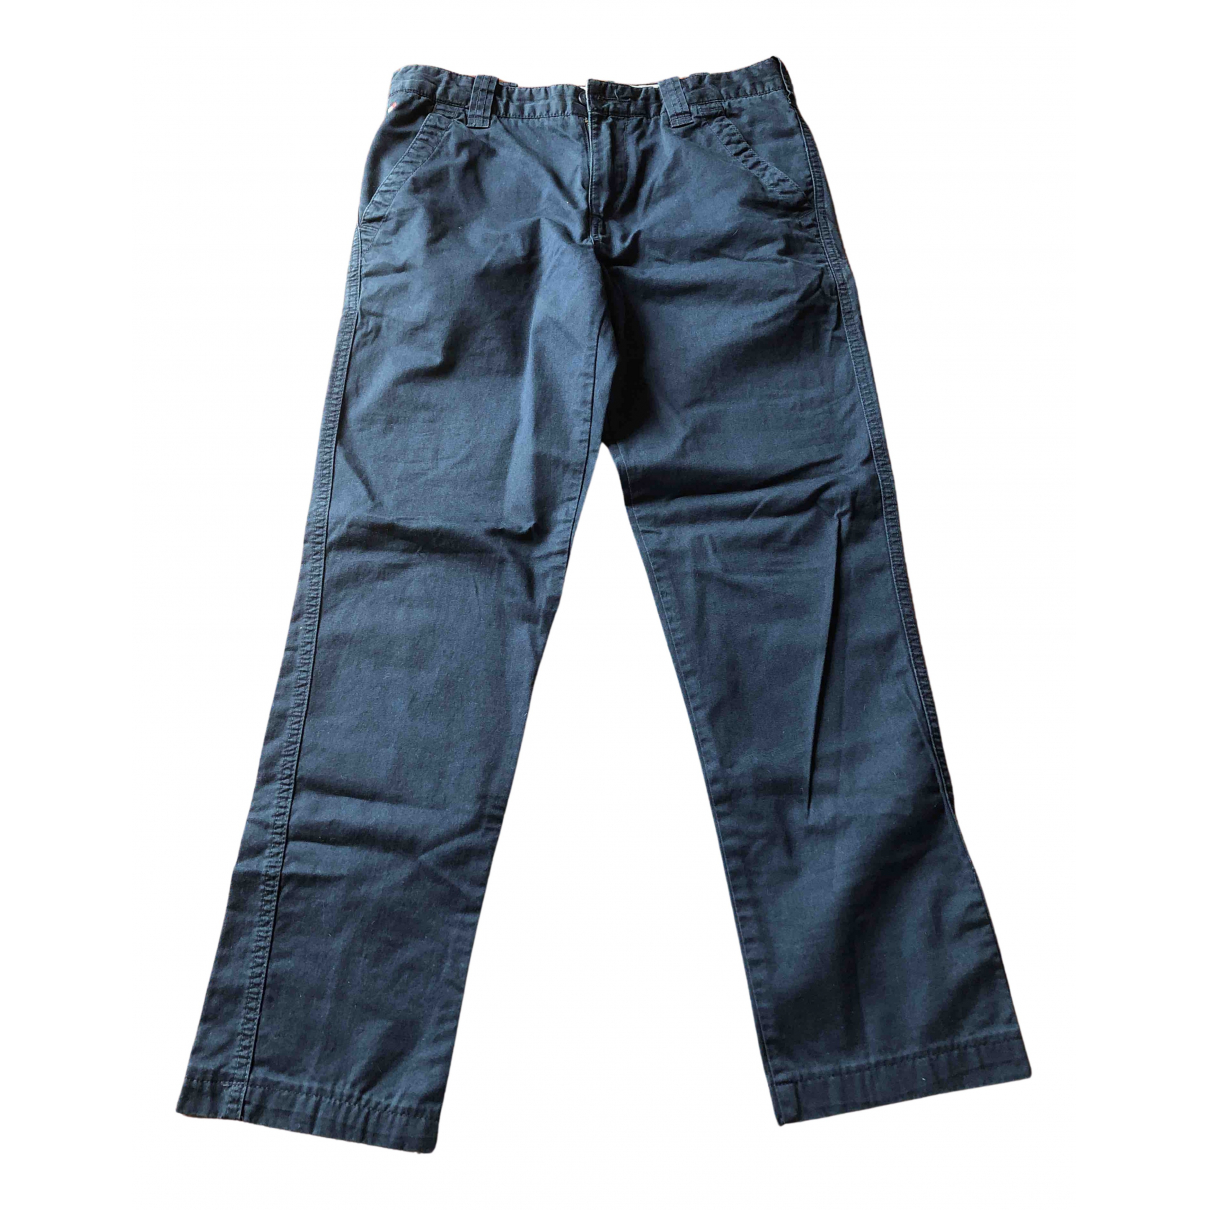 Tommy Hilfiger N Blue Cotton Trousers for Kids 16 years - M FR